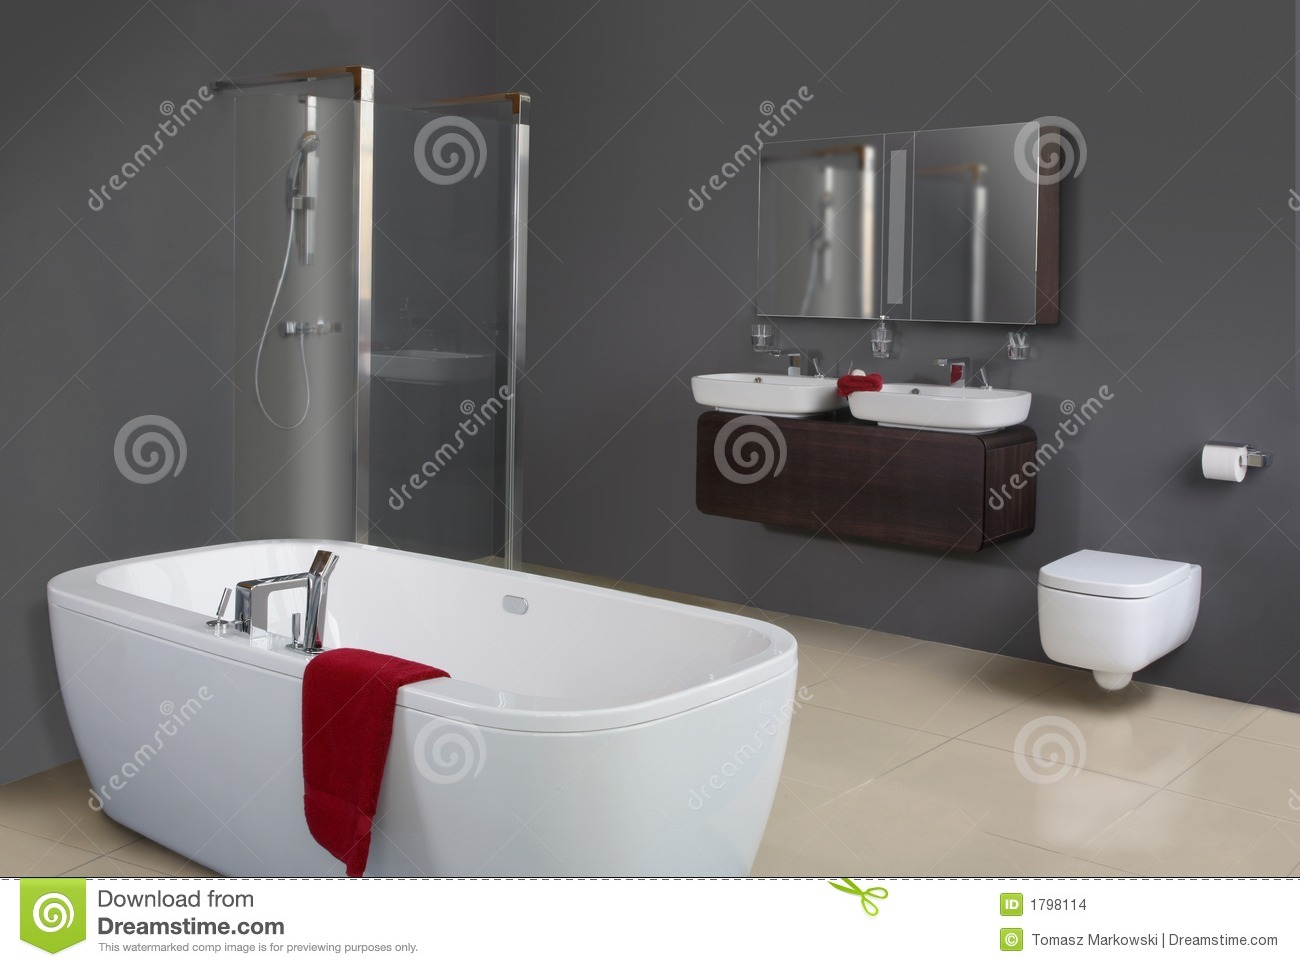 Salle de bains grise moderne images stock image 1798114 for Salle bain grise